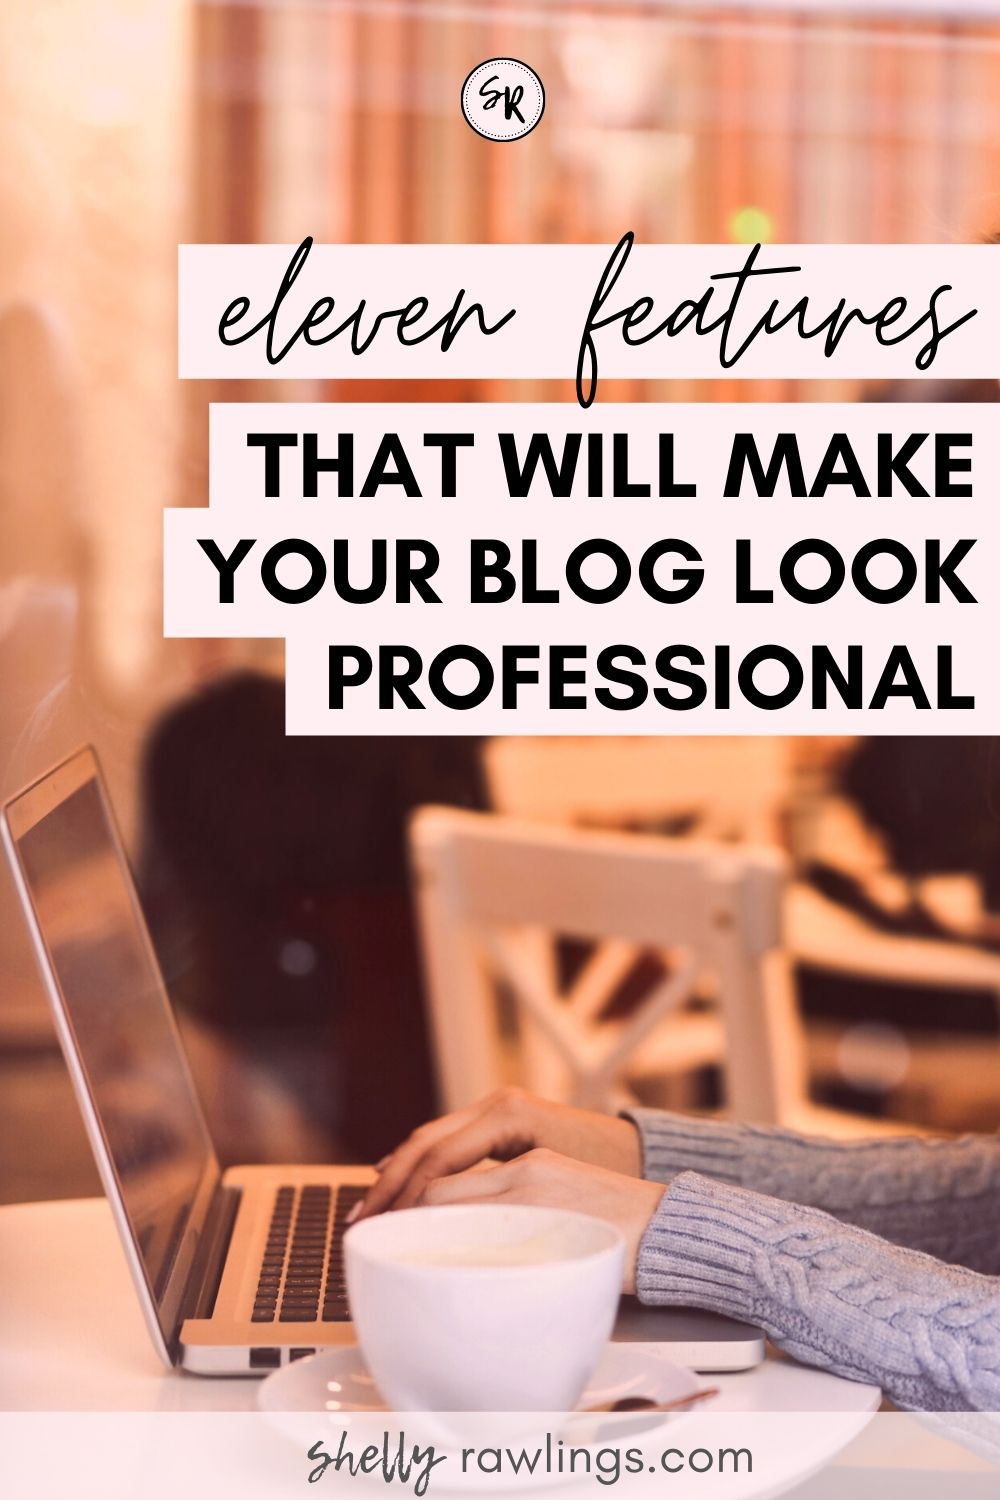 11 Features of Every Professional Blog | ShellyRawlings.com